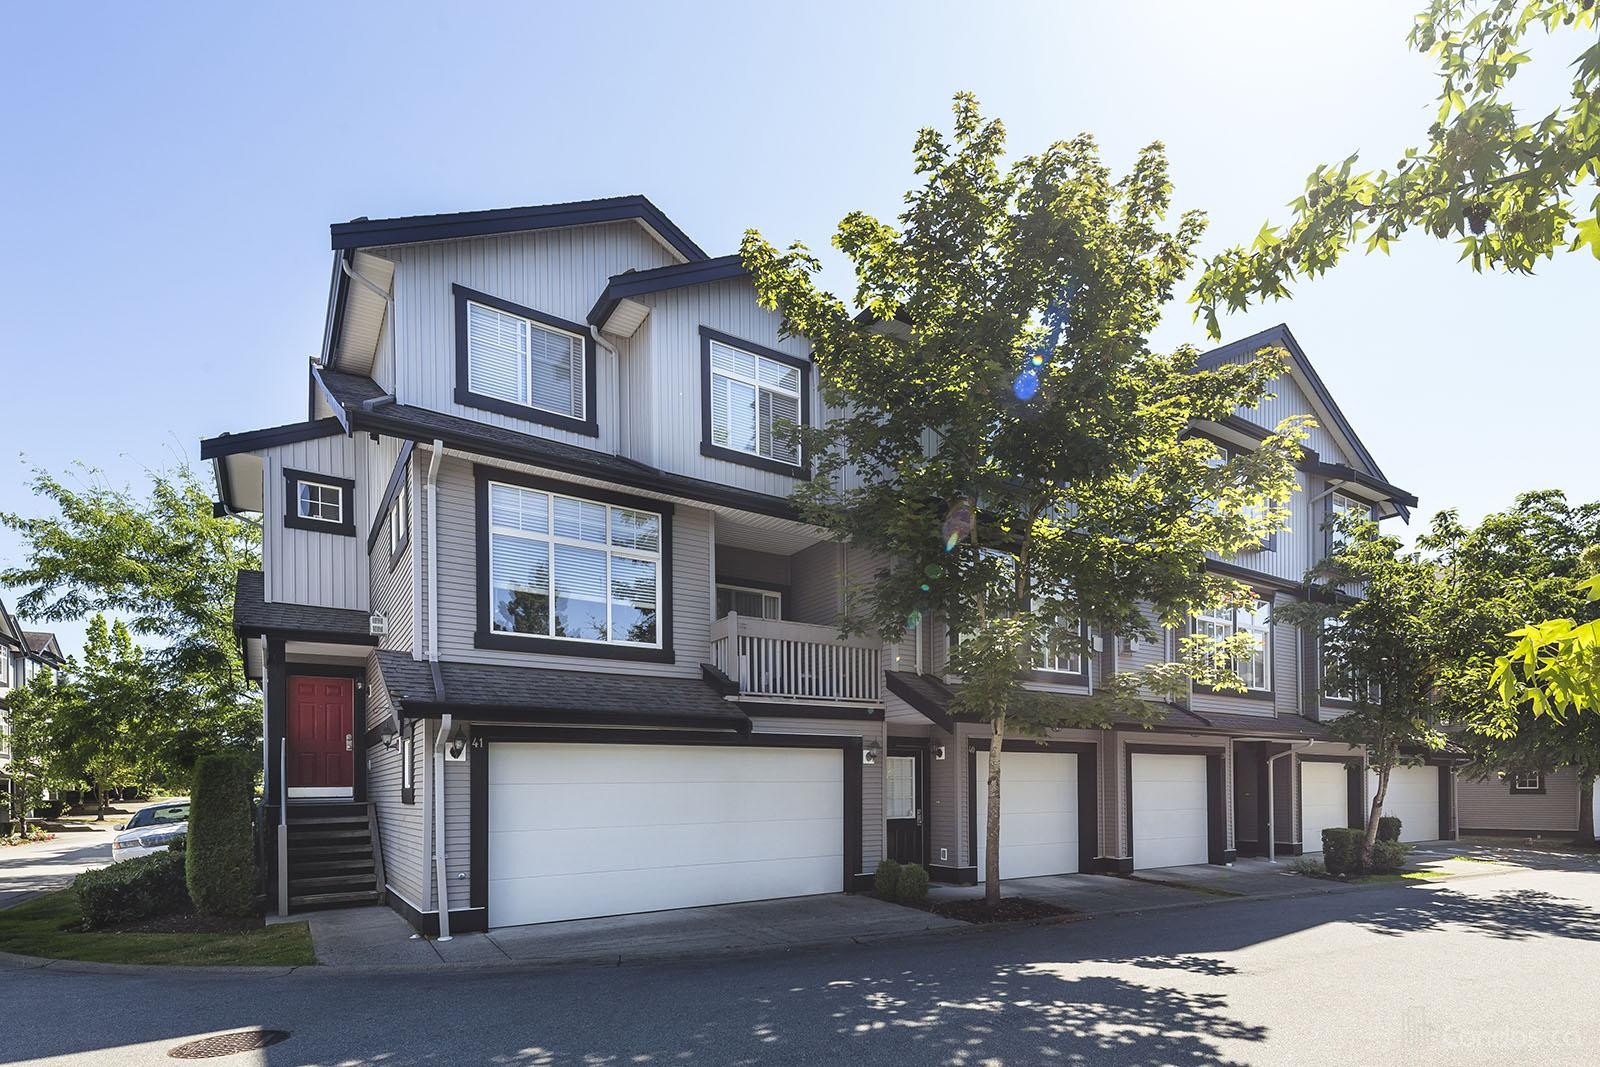 Starpoint at 18828 69 Ave, Surrey 1